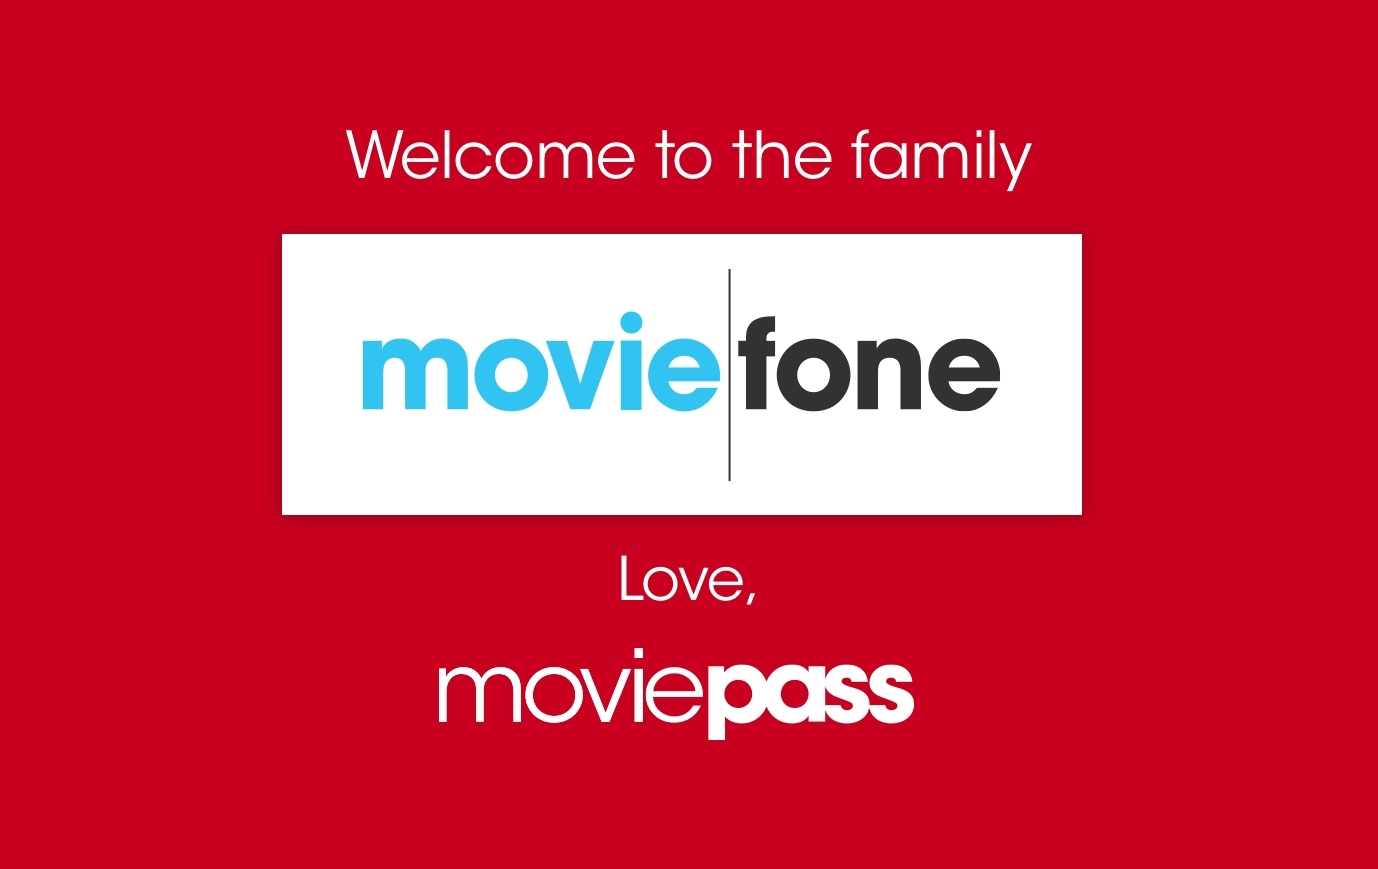 MoviePass Acquires Moviefone In Move To Lure Subscribers & Increase Ad Revenue